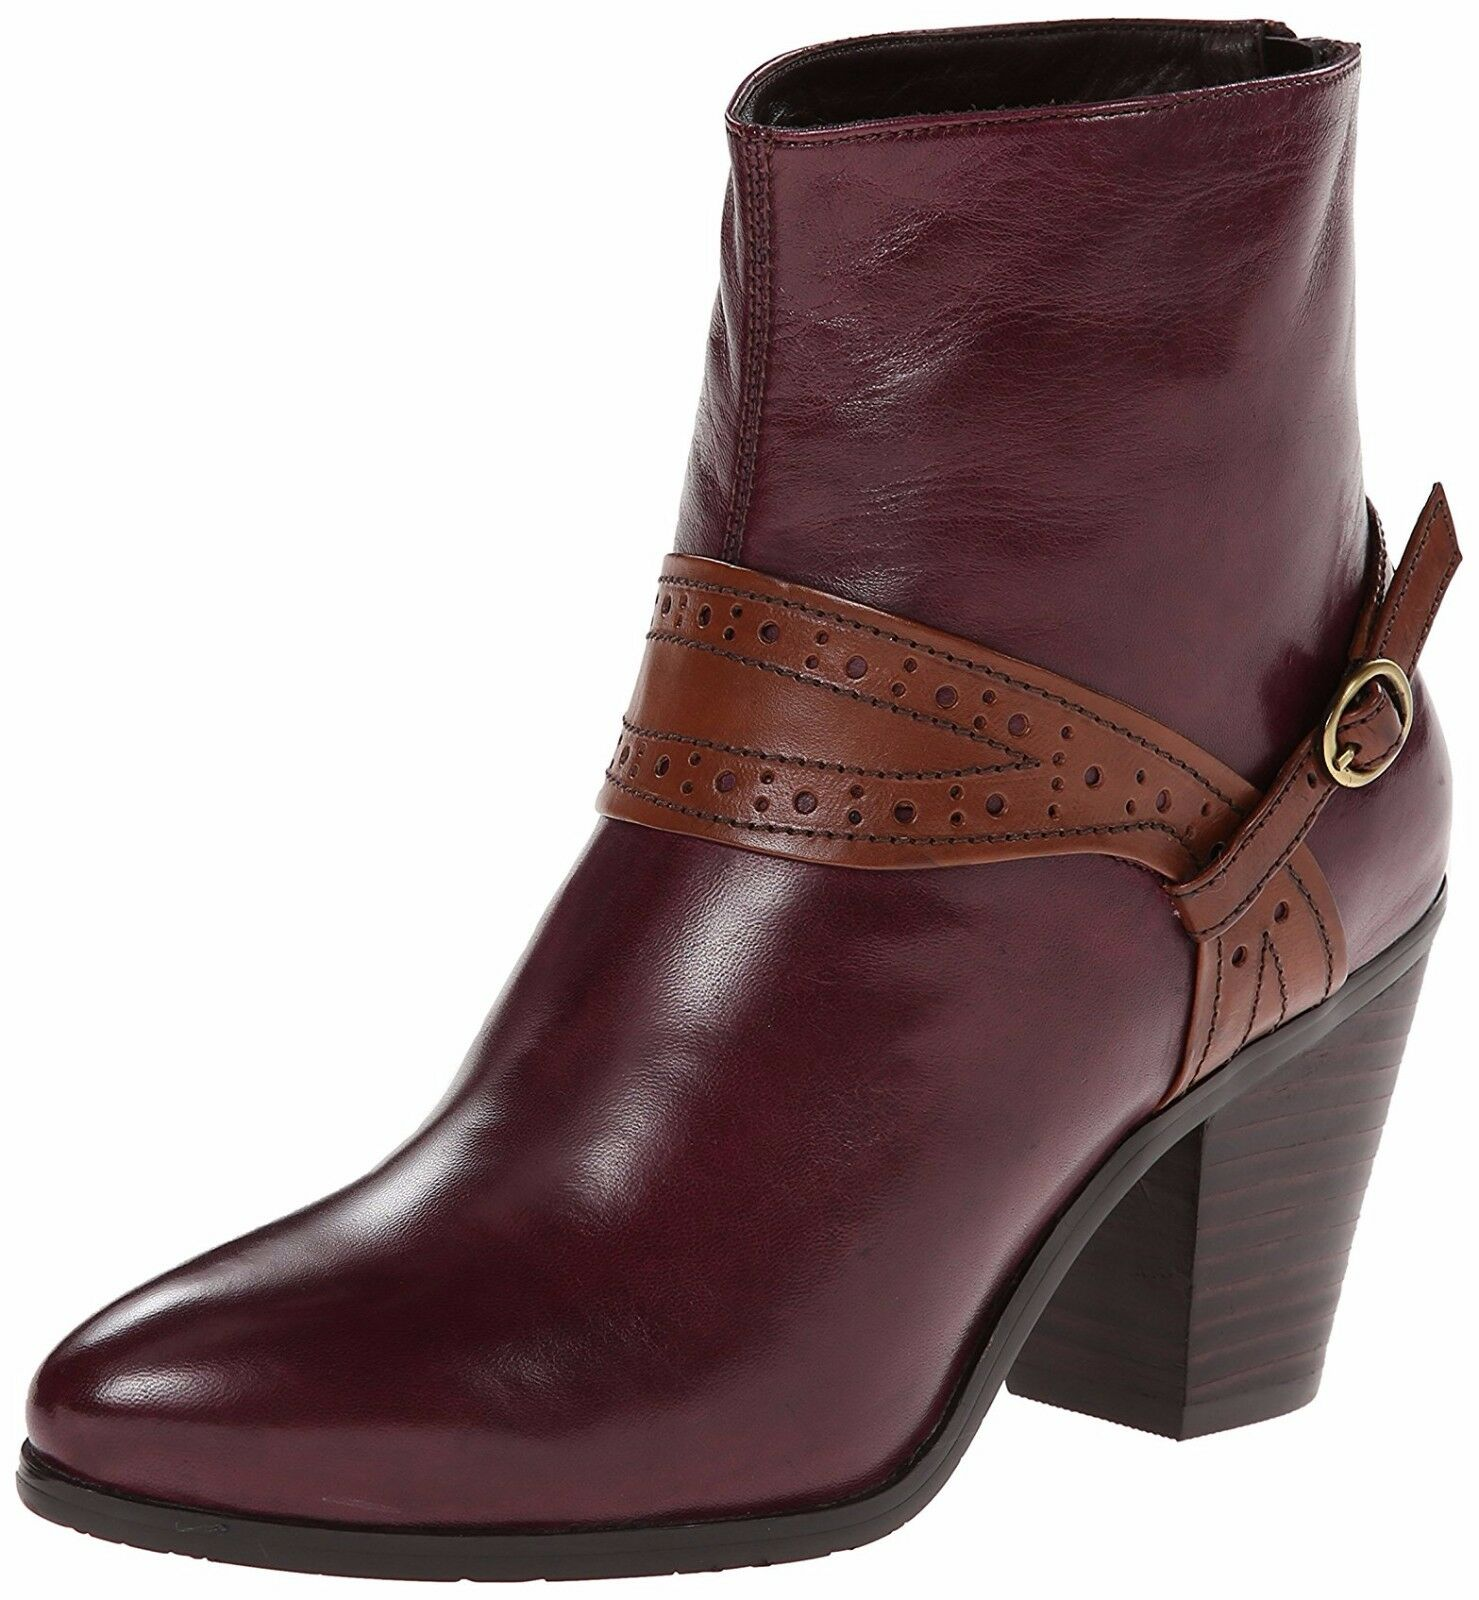 EVERYBODY BY BZ MODA SHOES SACCARE BOOTIES HARNESS ANKLE BOOTS VINO NEW  230 9